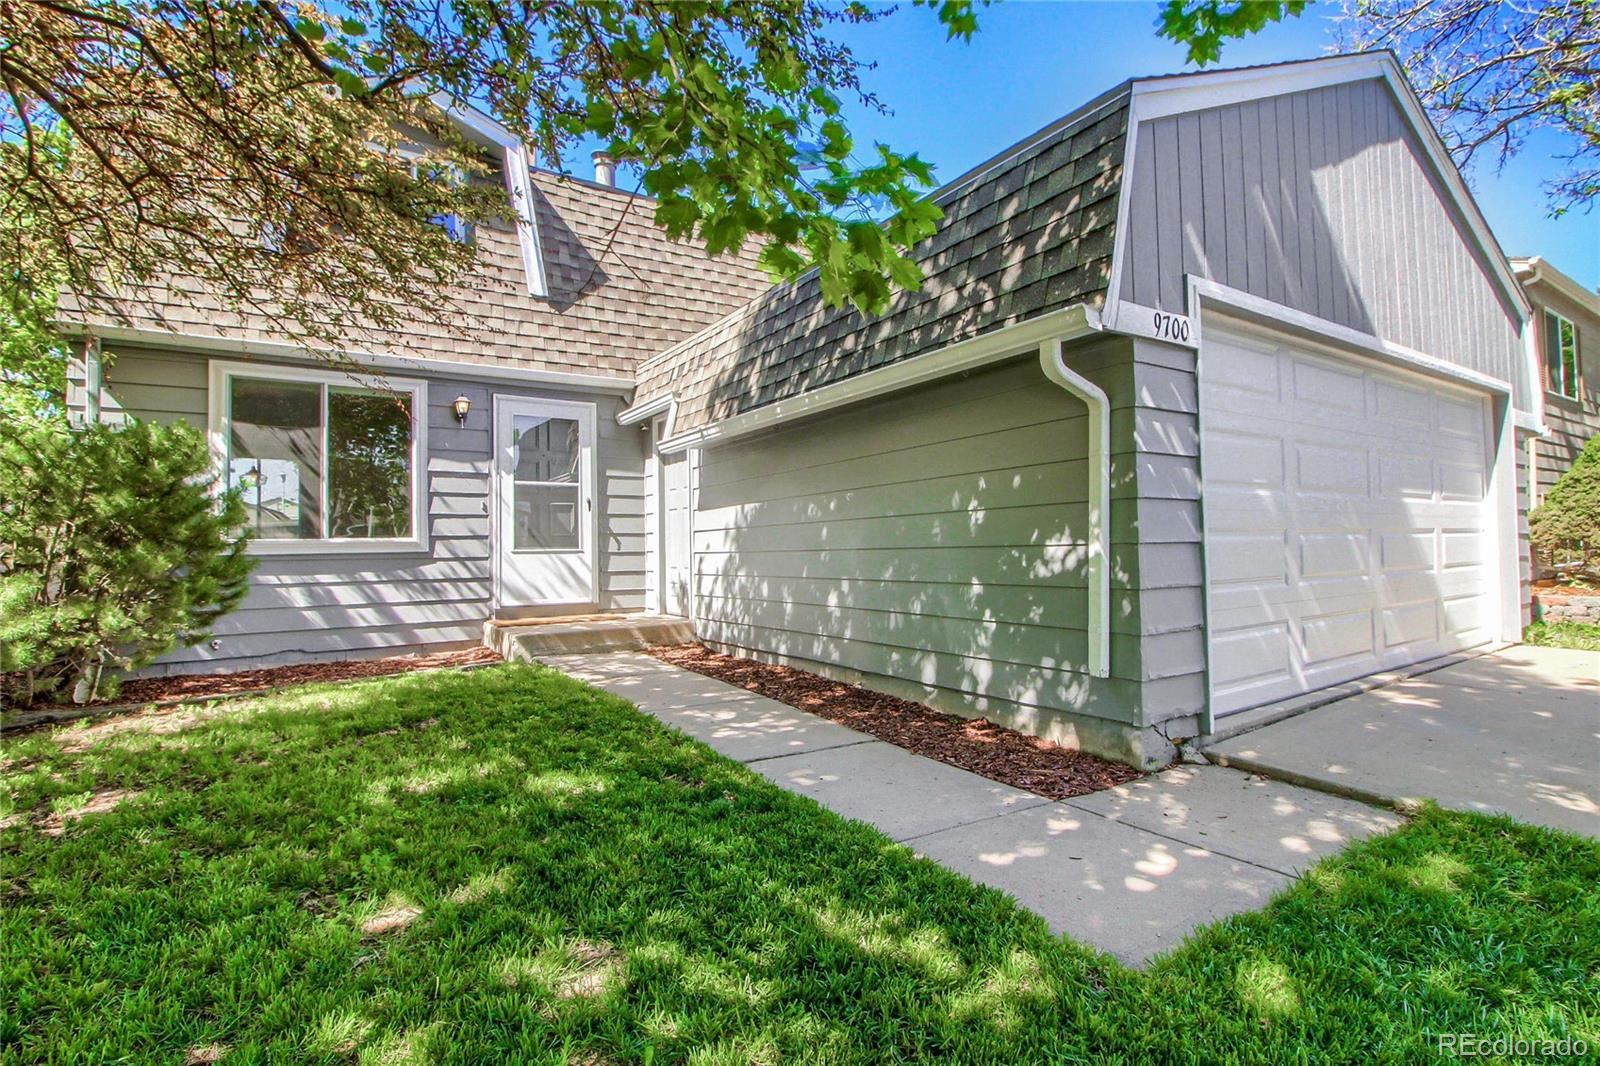 9700 W 105th Avenue, Westminster, CO 80021 - #: 1866284